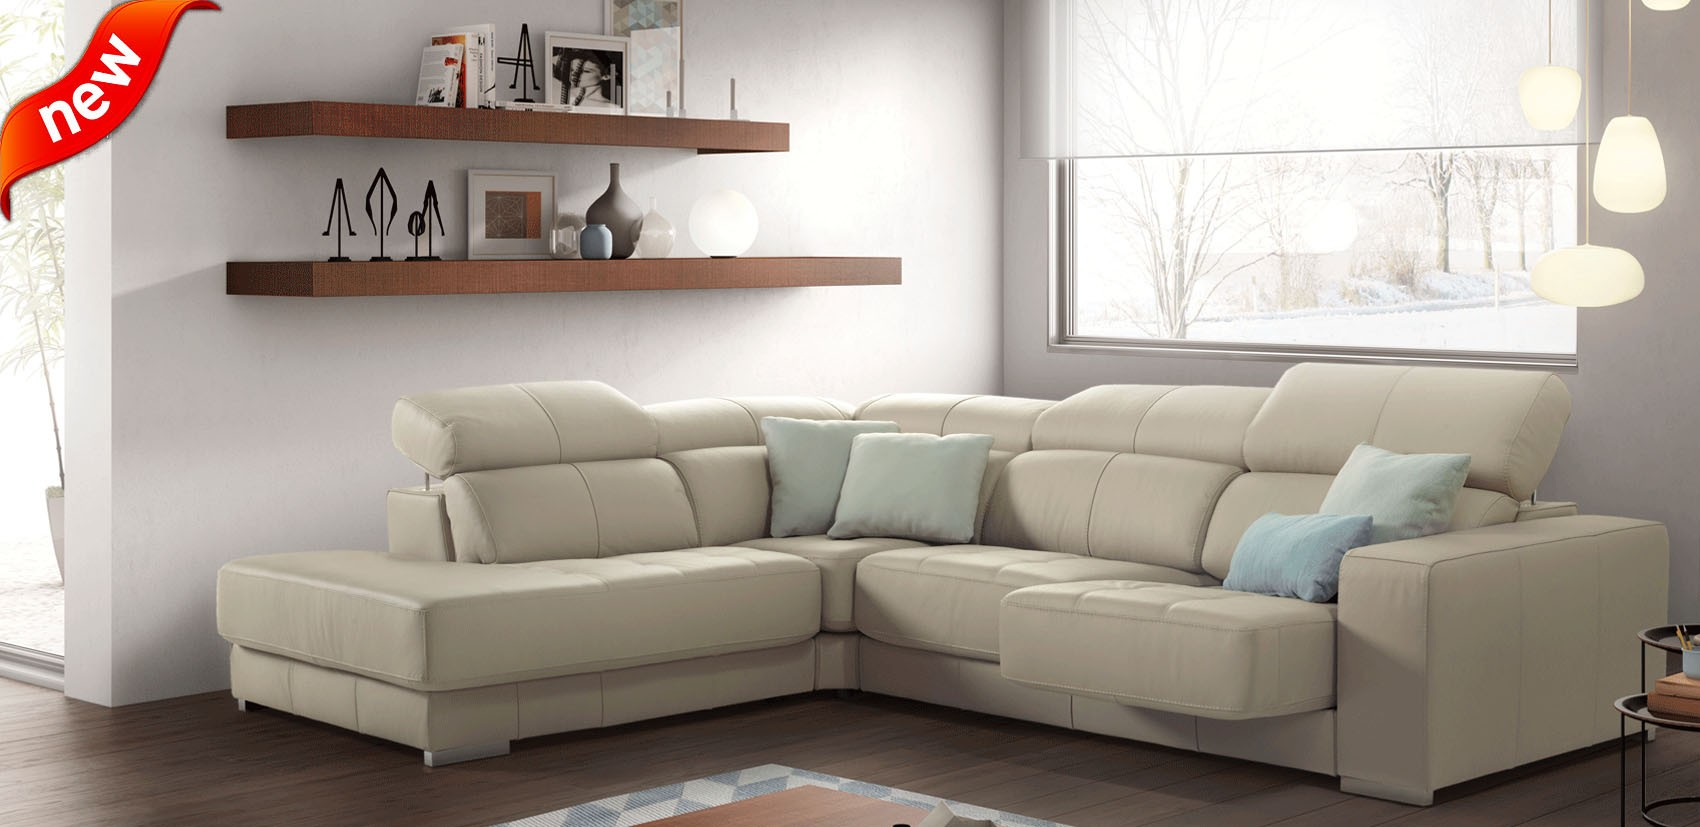 furniture-banner-277